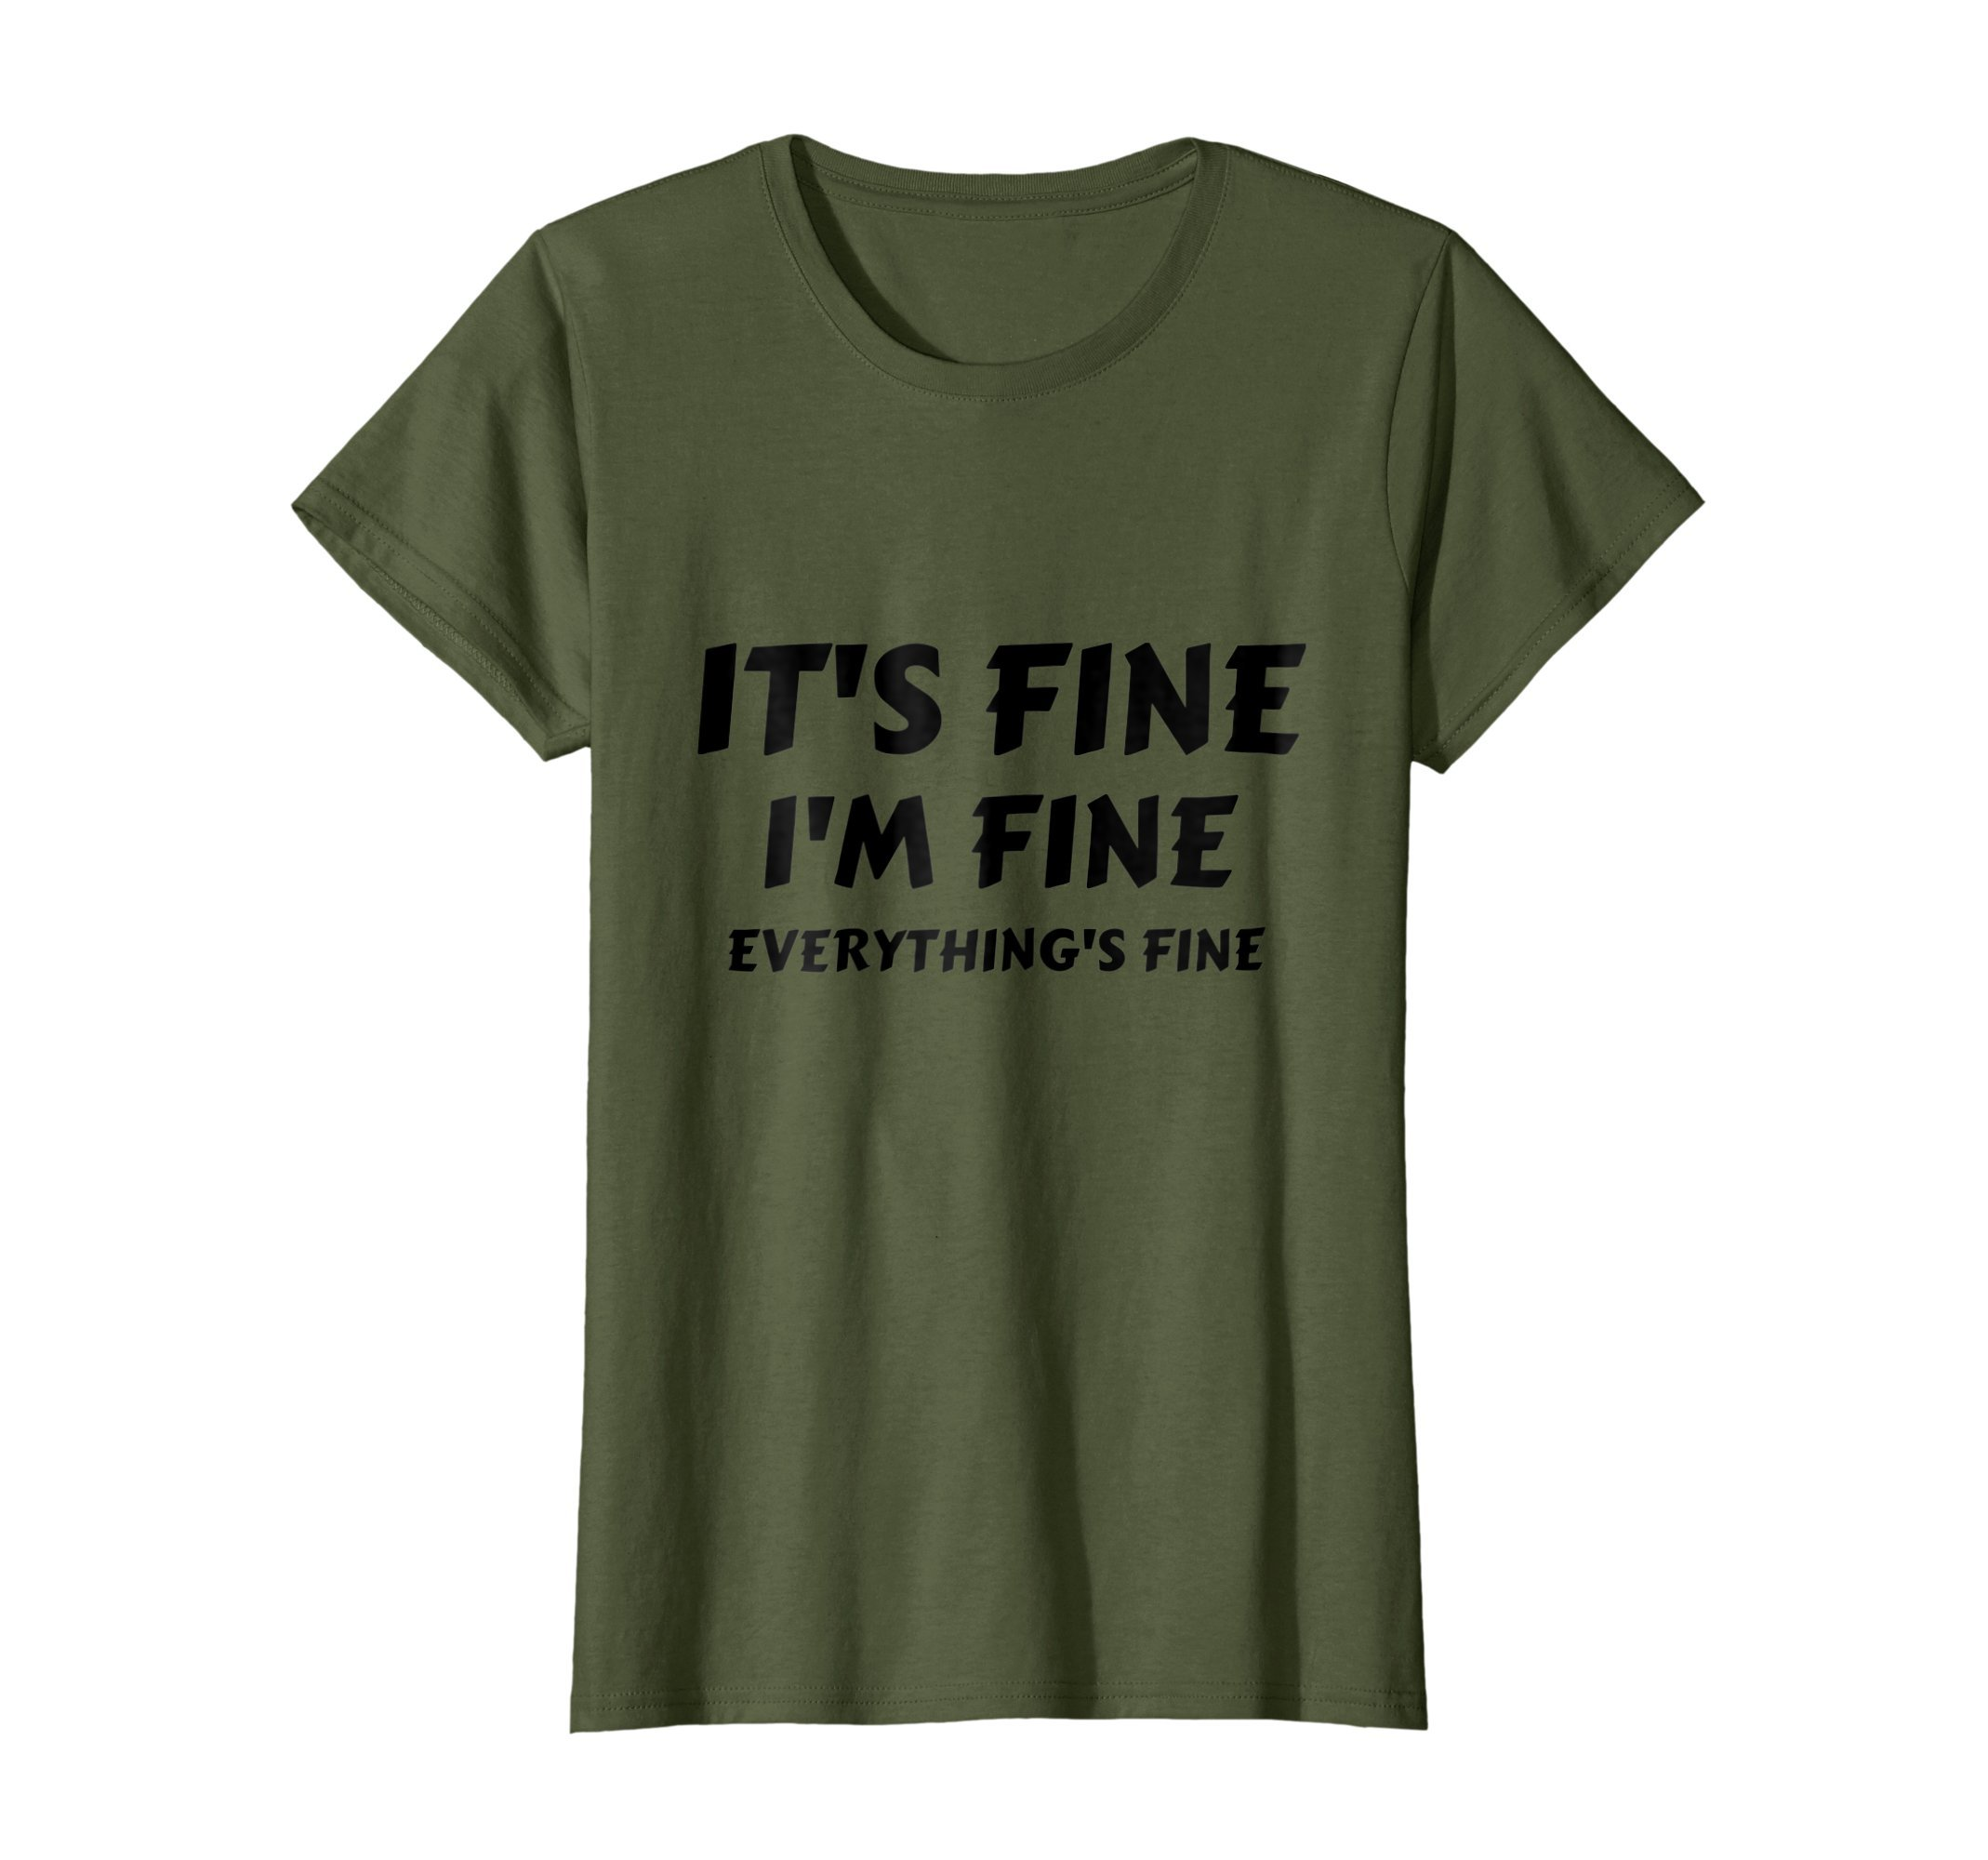 Womens It's Fine I'm Fine Everything's Fine Funny T-Shirt Large Olive